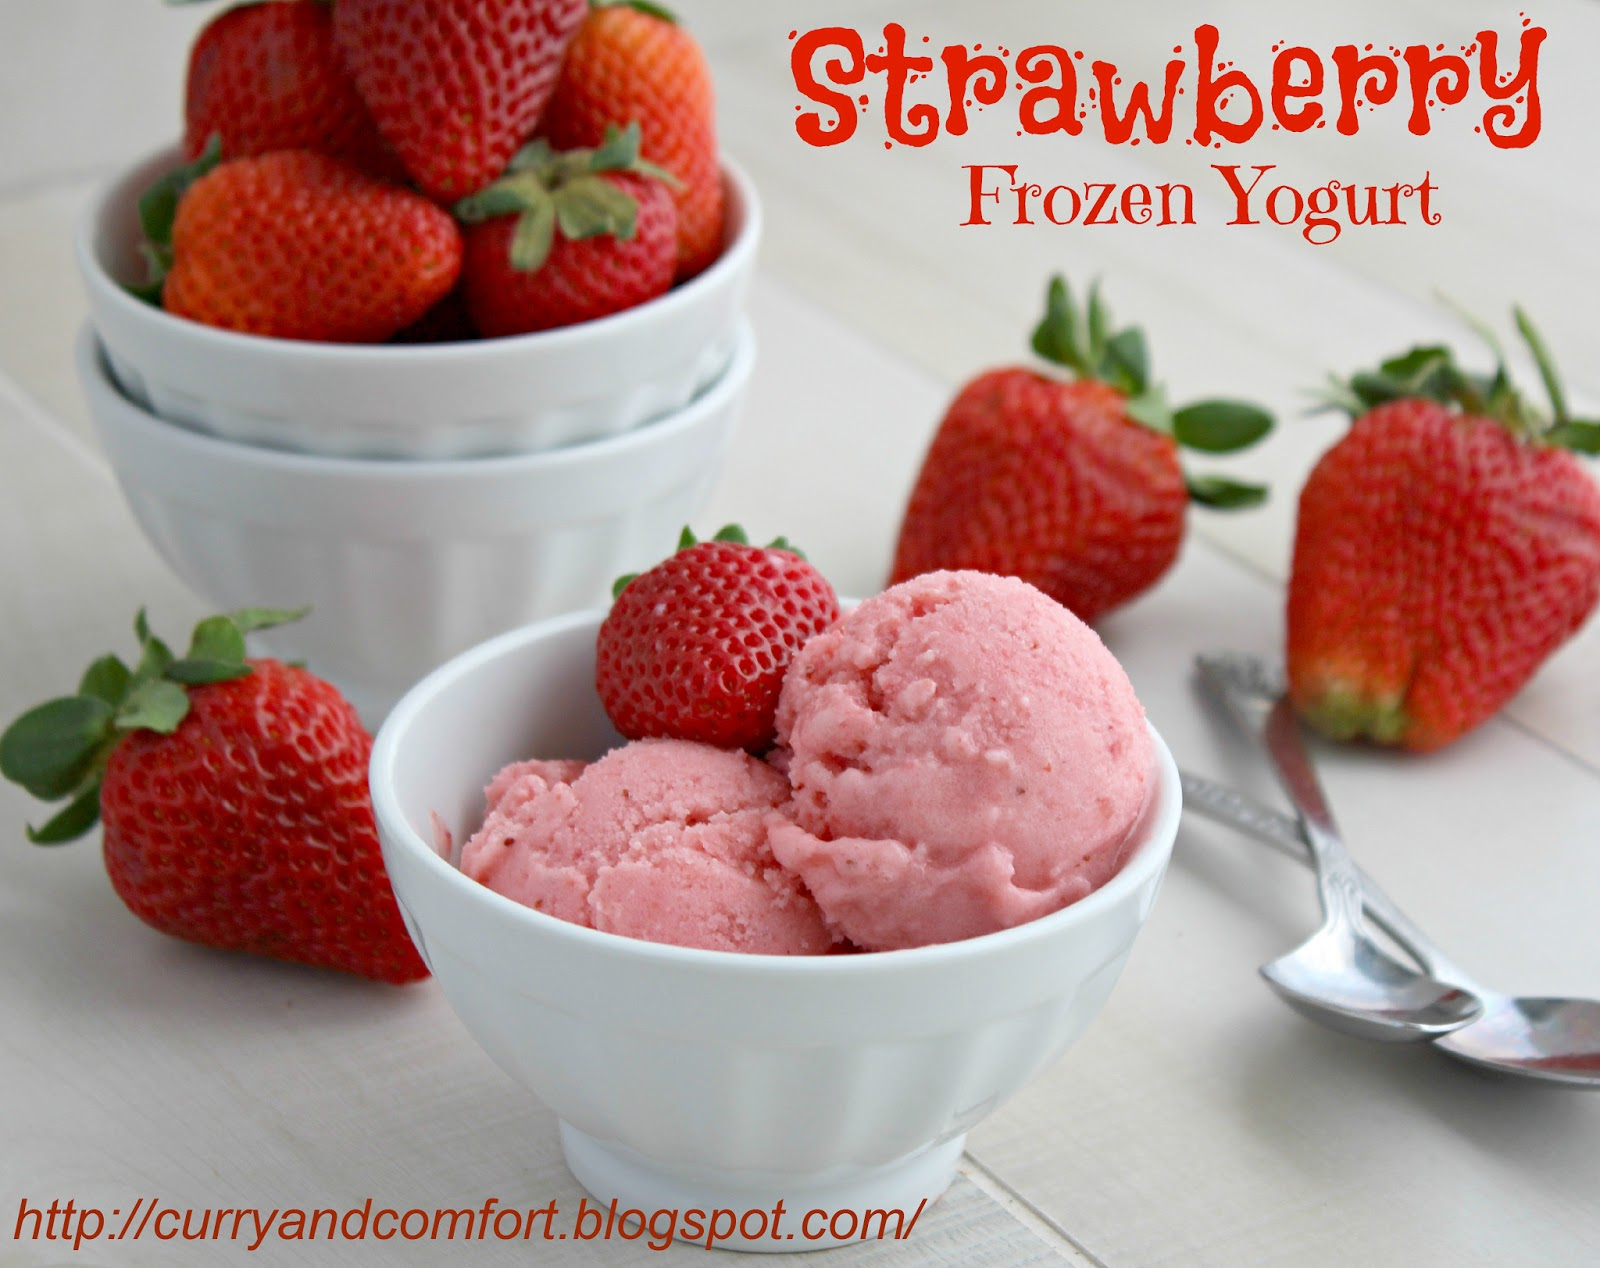 Curry and Comfort: Strawberry Frozen Yogurt